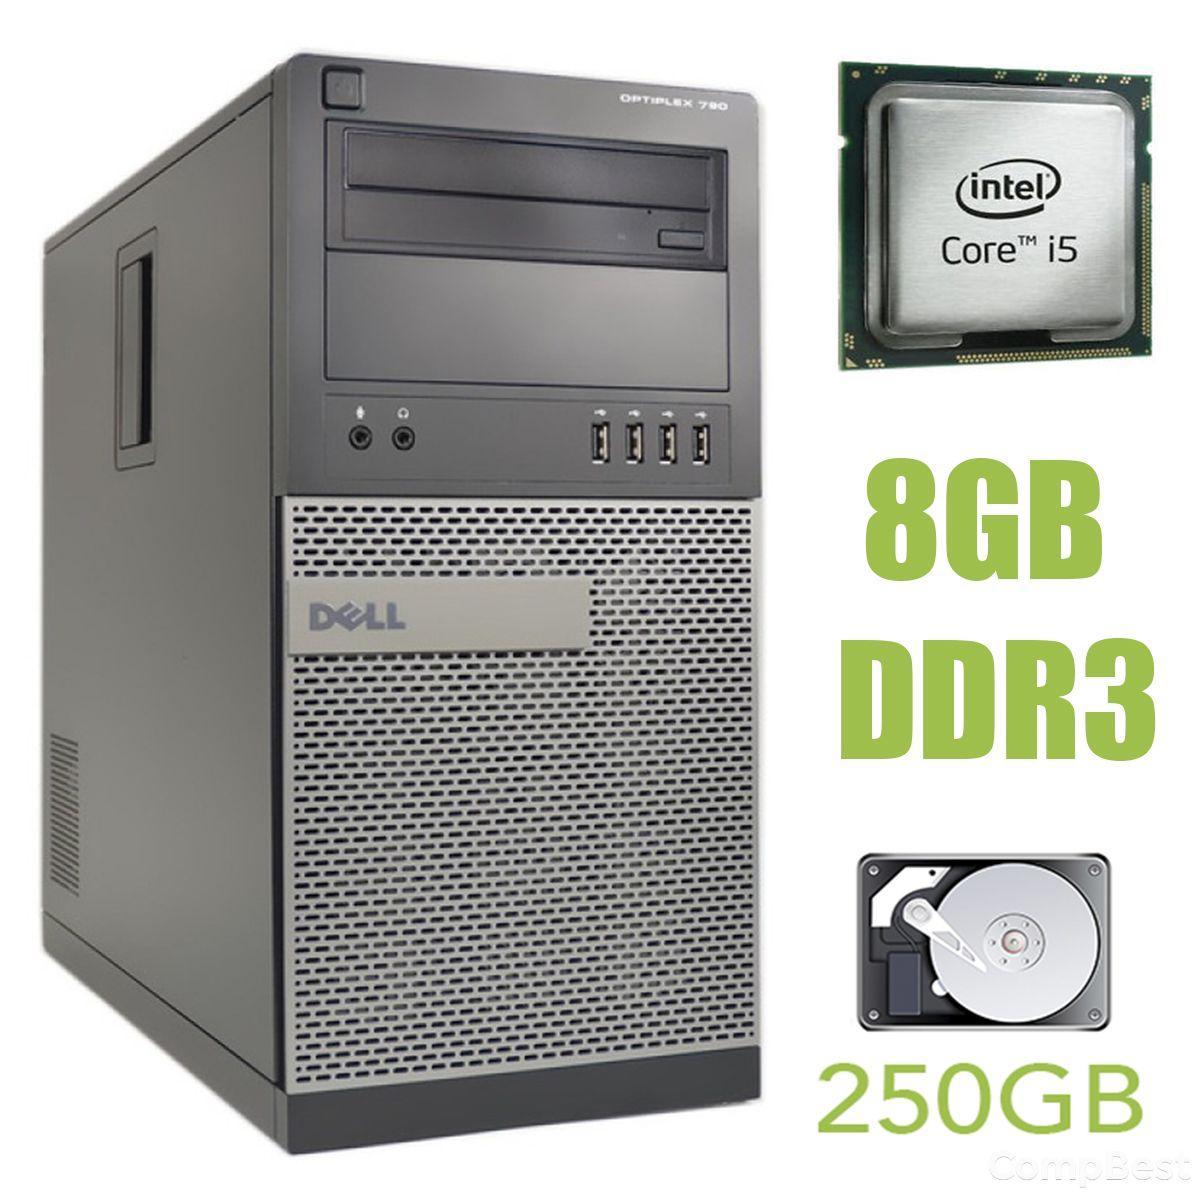 Dell Optiplex 790 MT / Intel Core i5-2400 (4 ядра по 3.1-3.4GHz) / 8GB DDR3 / 250GB HDD